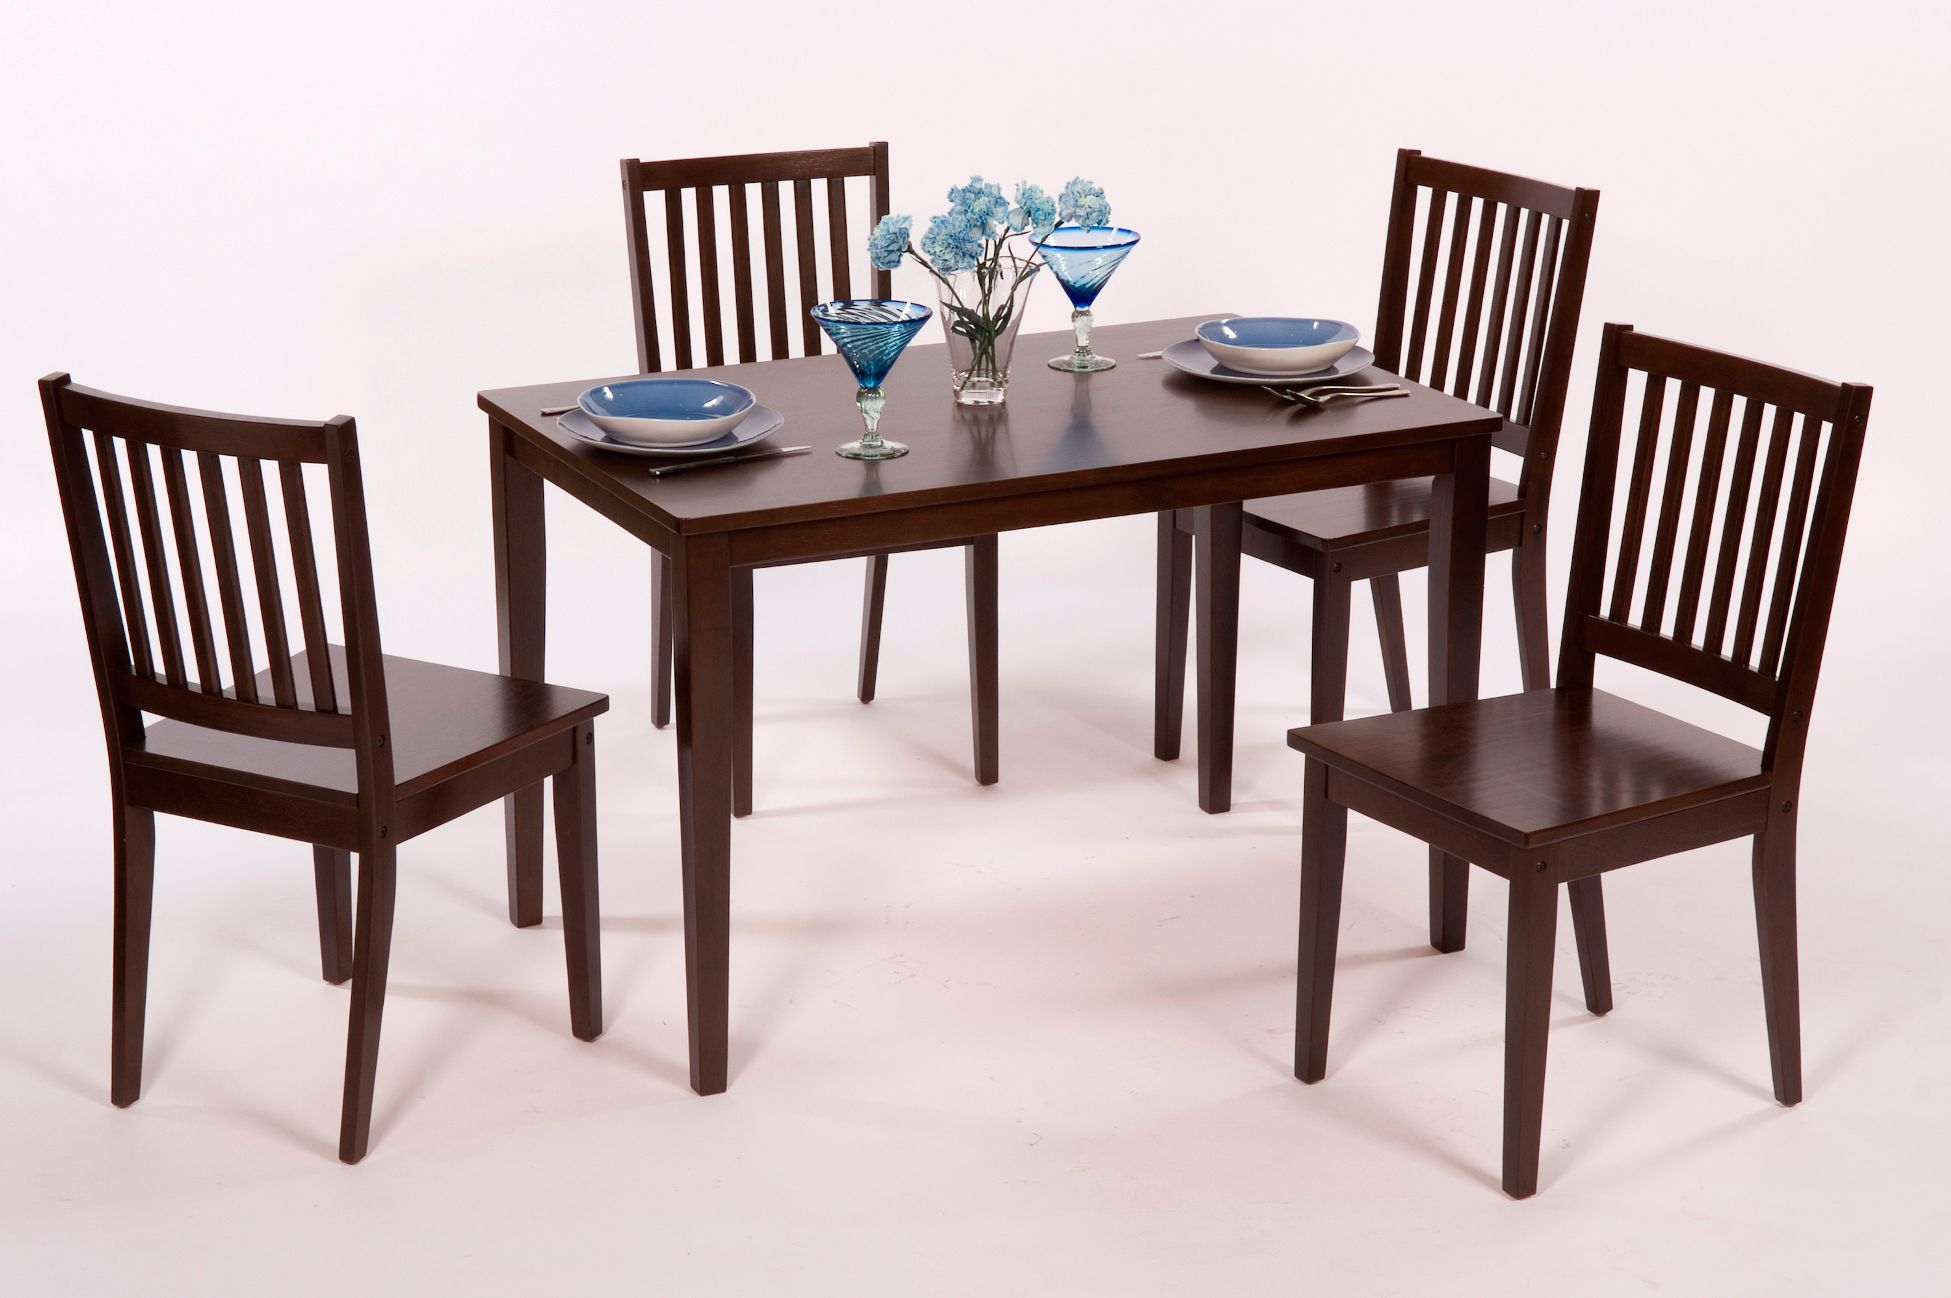 5 Pc Shaker Dining Set Sears Com Real Wood Table 45x28 245